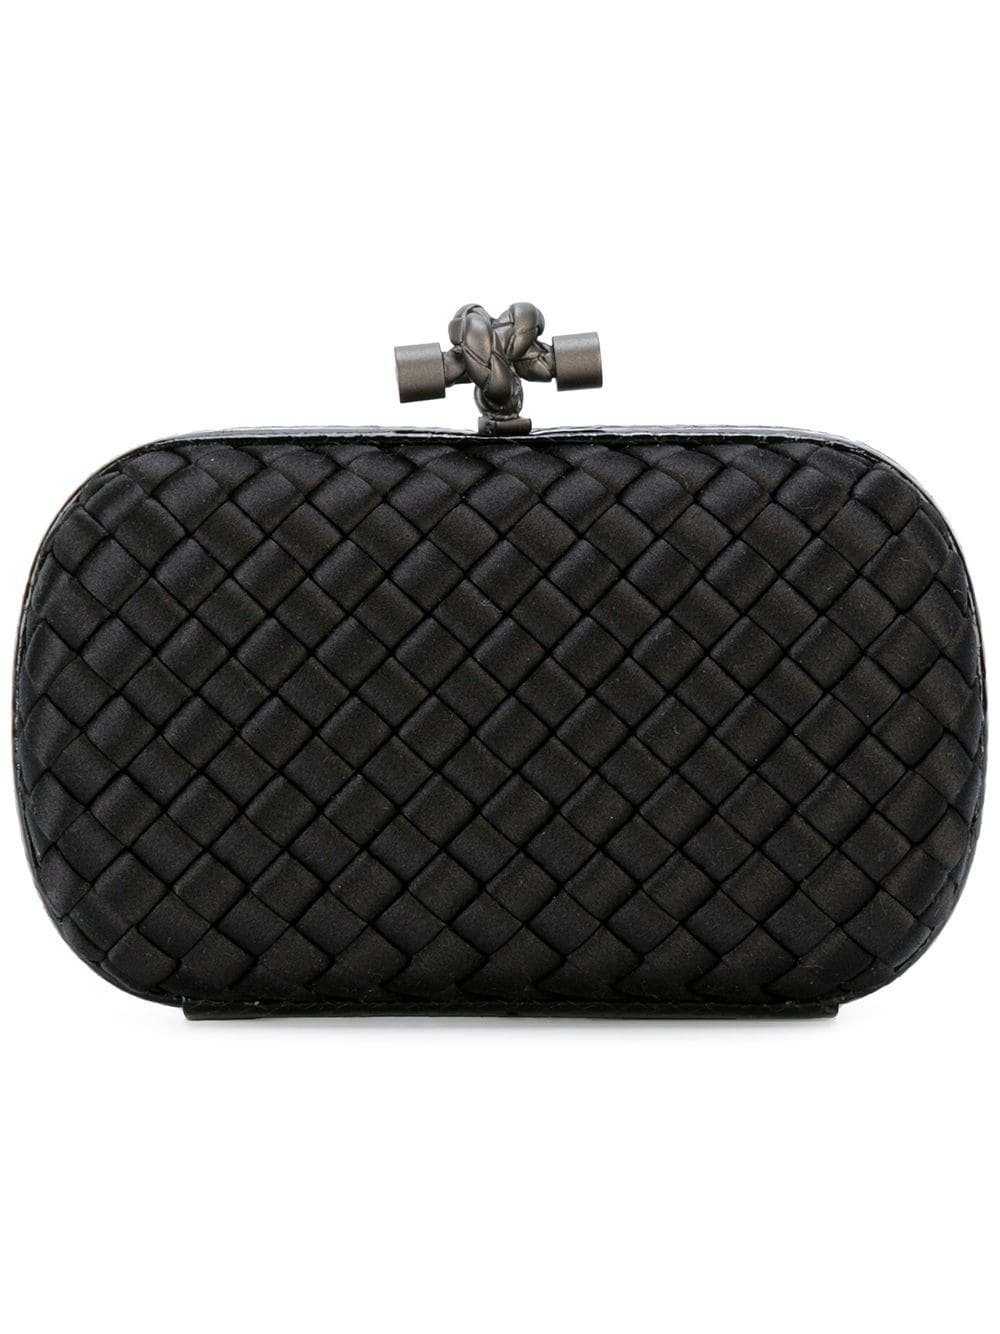 Bottega Veneta Clutch Trançada - Farfetch